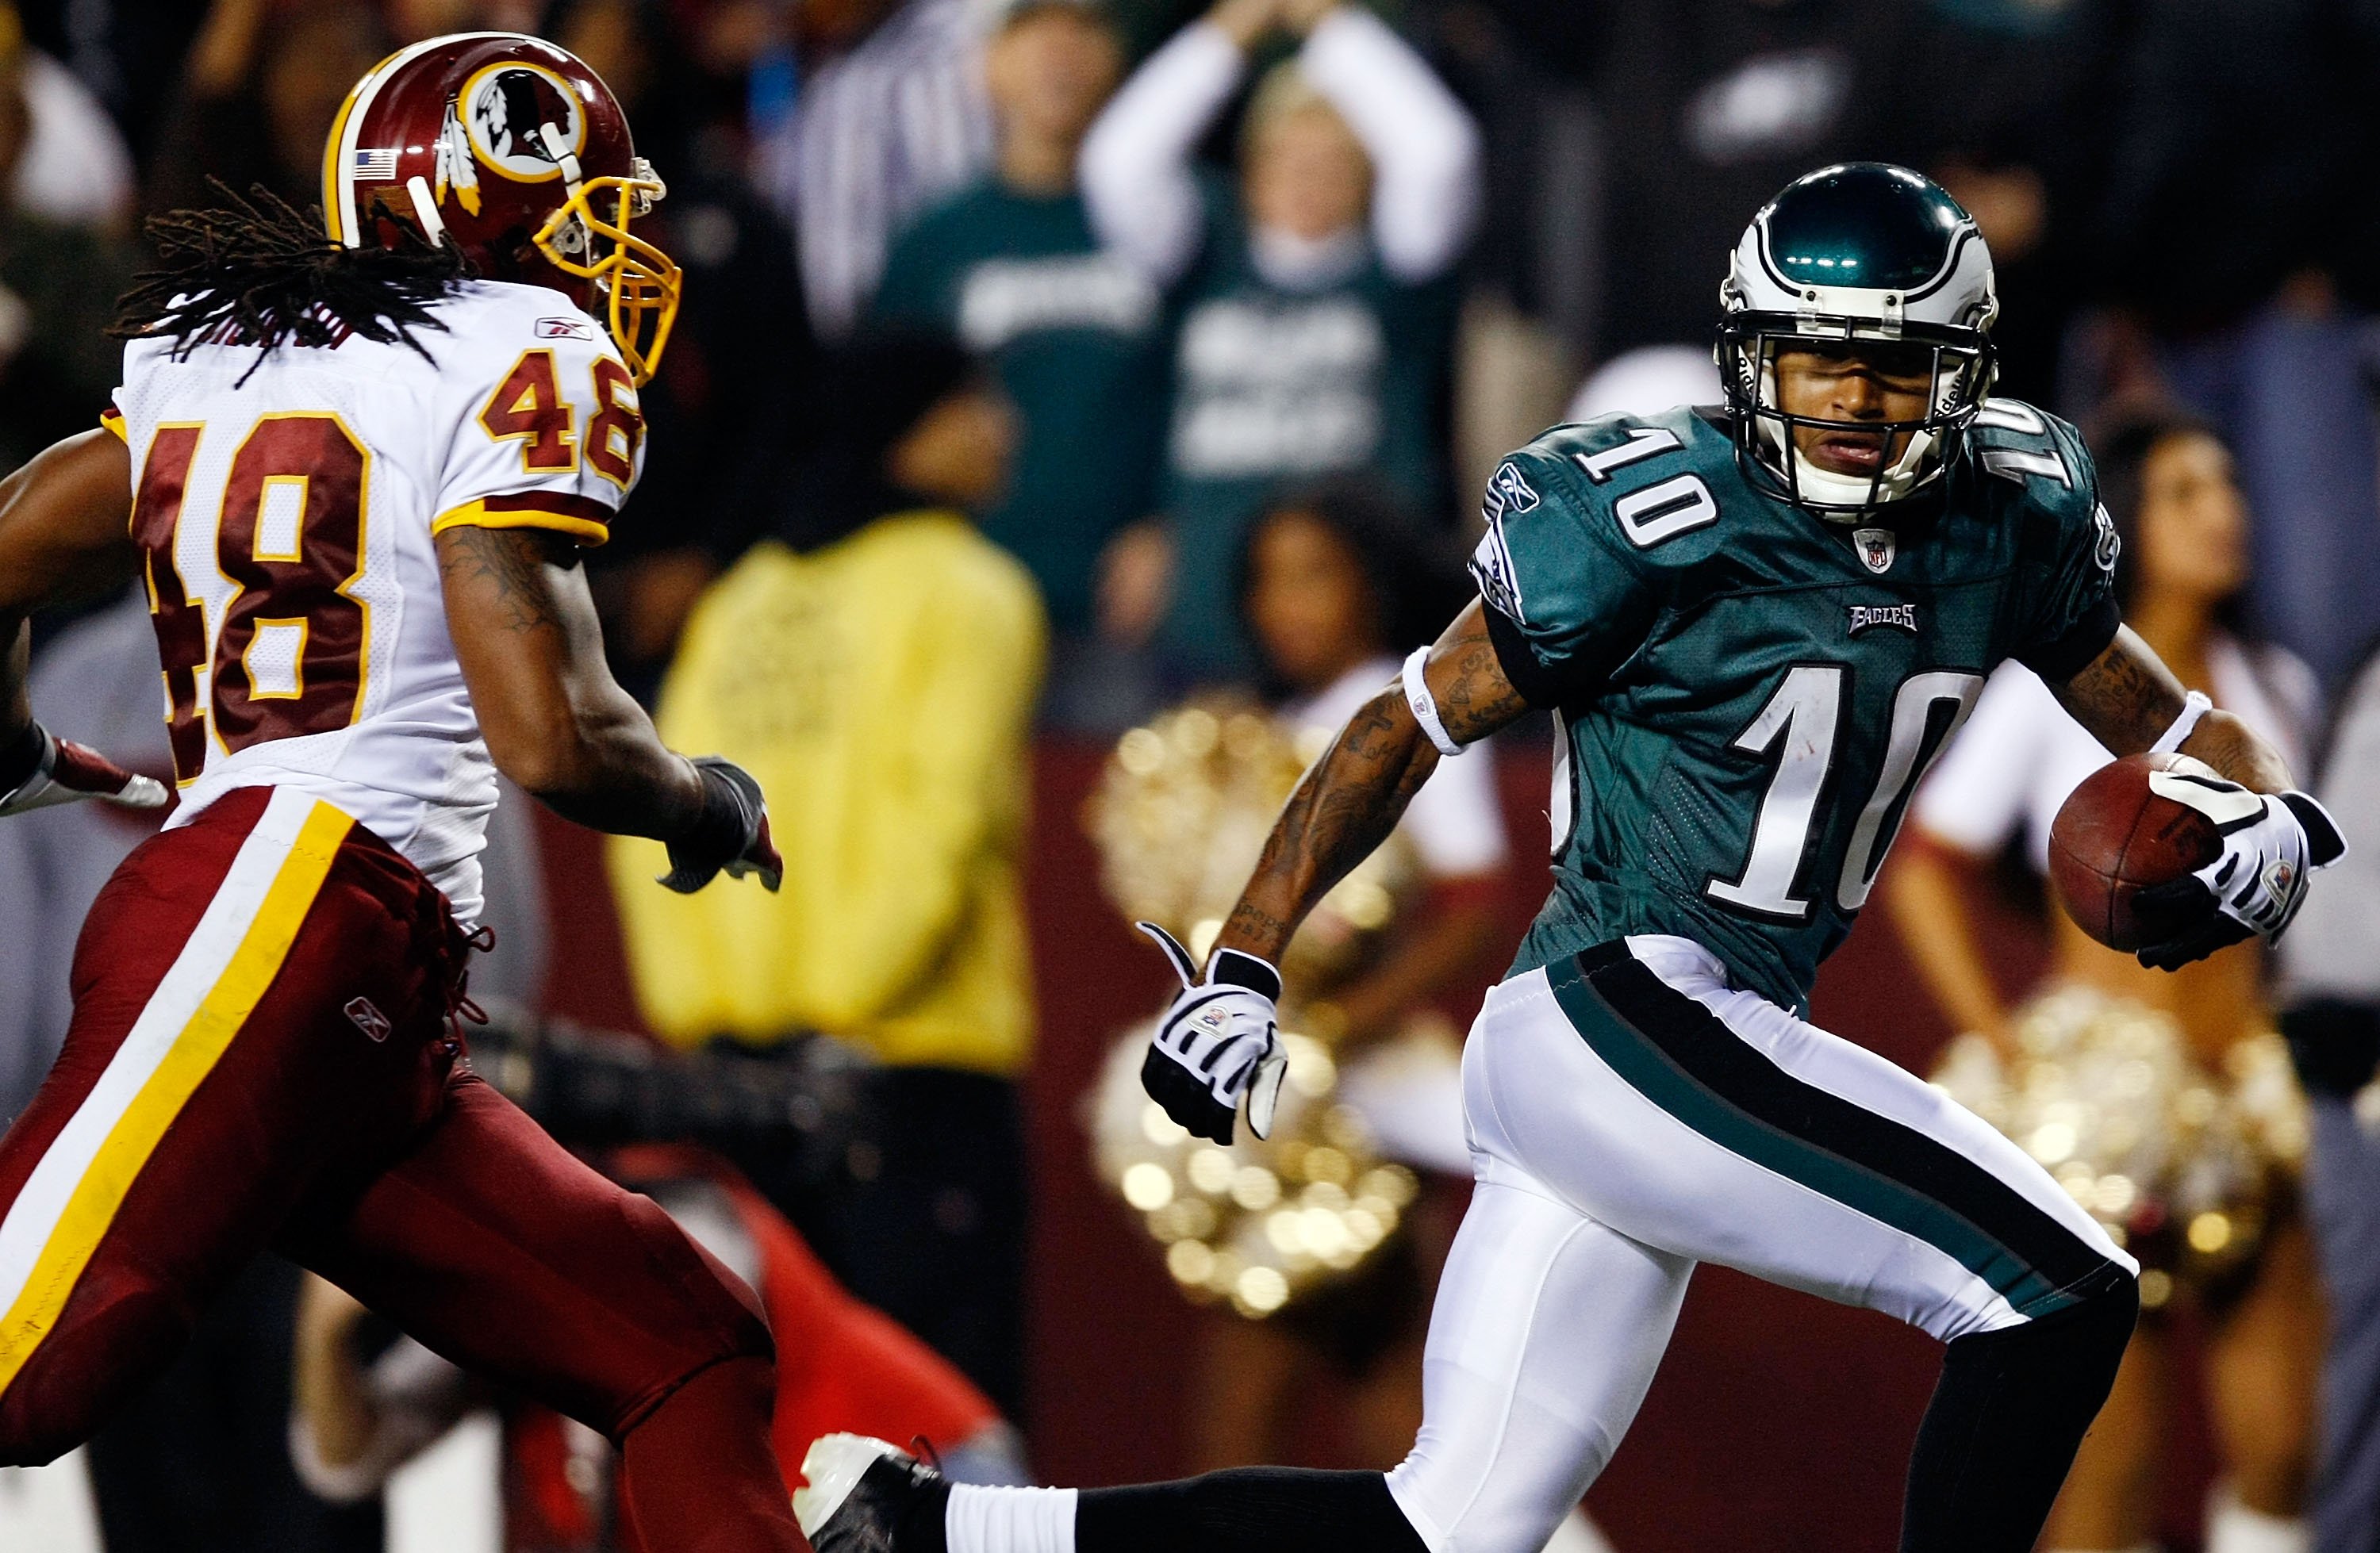 LANDOVER, MD - OCTOBER 26:  DeSean Jackson #10 of the Philadelphia Eagles races past Chris Horton #48 of the Washington Redskins to score his second touchdown at FedEx Field October 26, 2009 in Landover, Maryland.  The Eagles won the game 27-17.  (Photo b